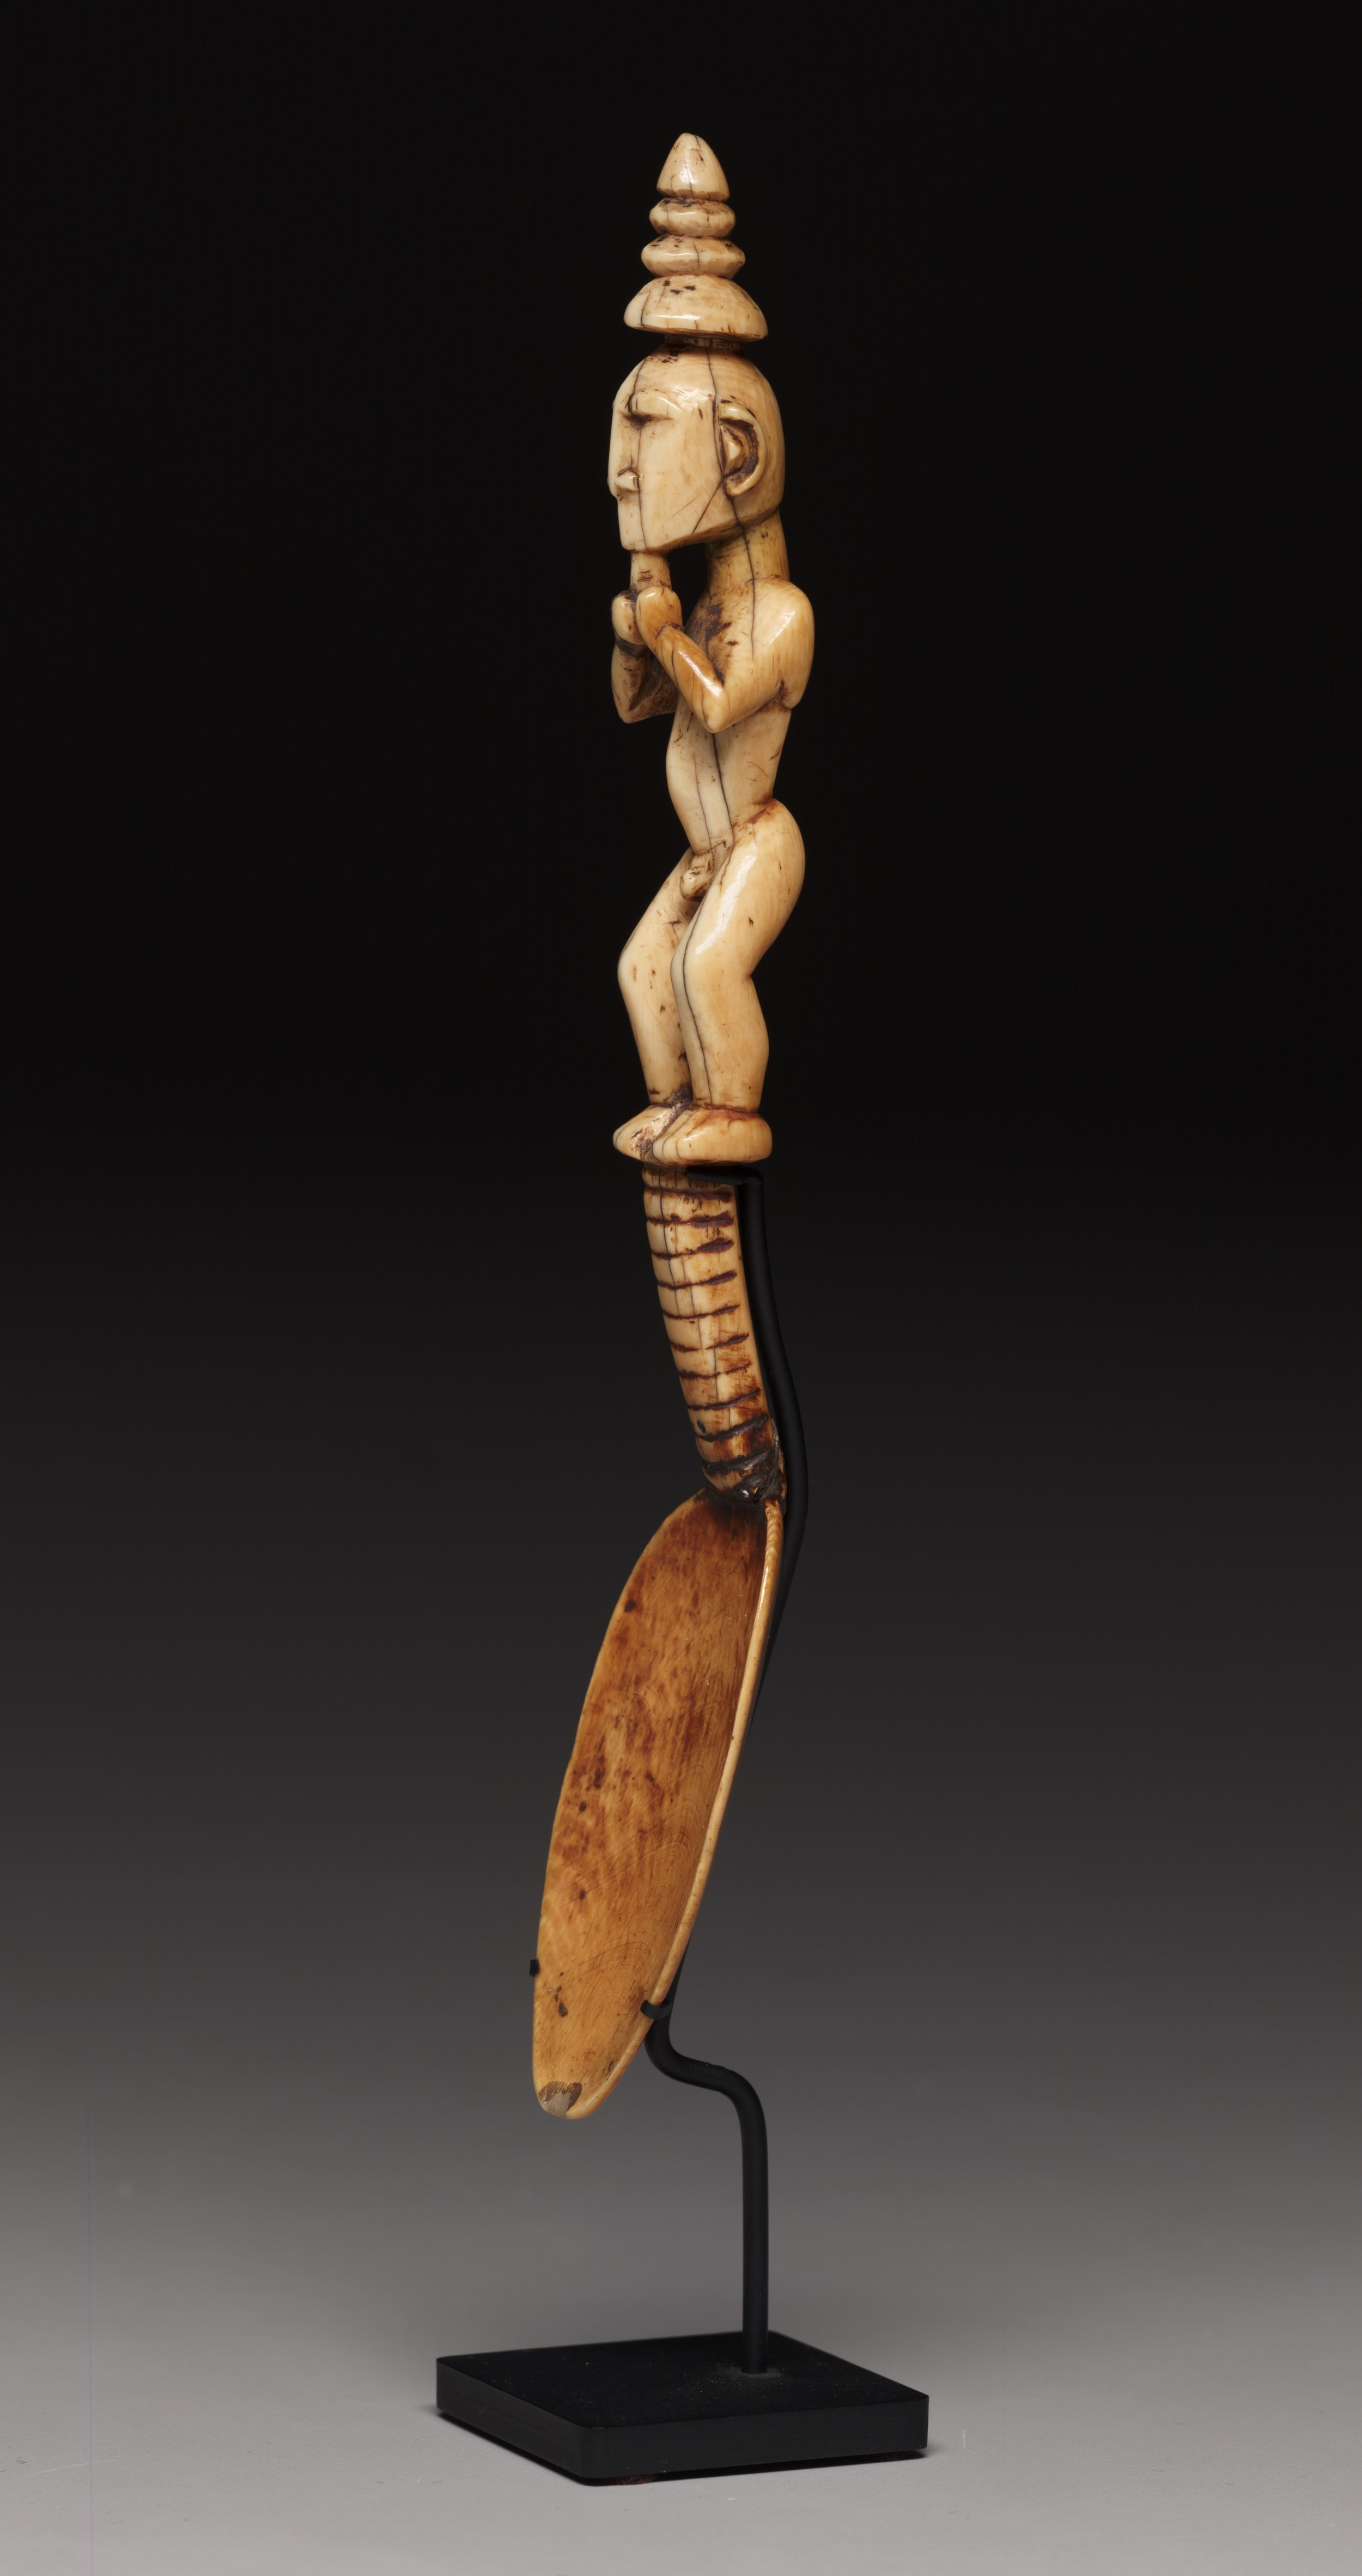 Ceremonial Ivory Spoon from Eastern Indonesia  © The Dallas Museum of Art | Texas, USA